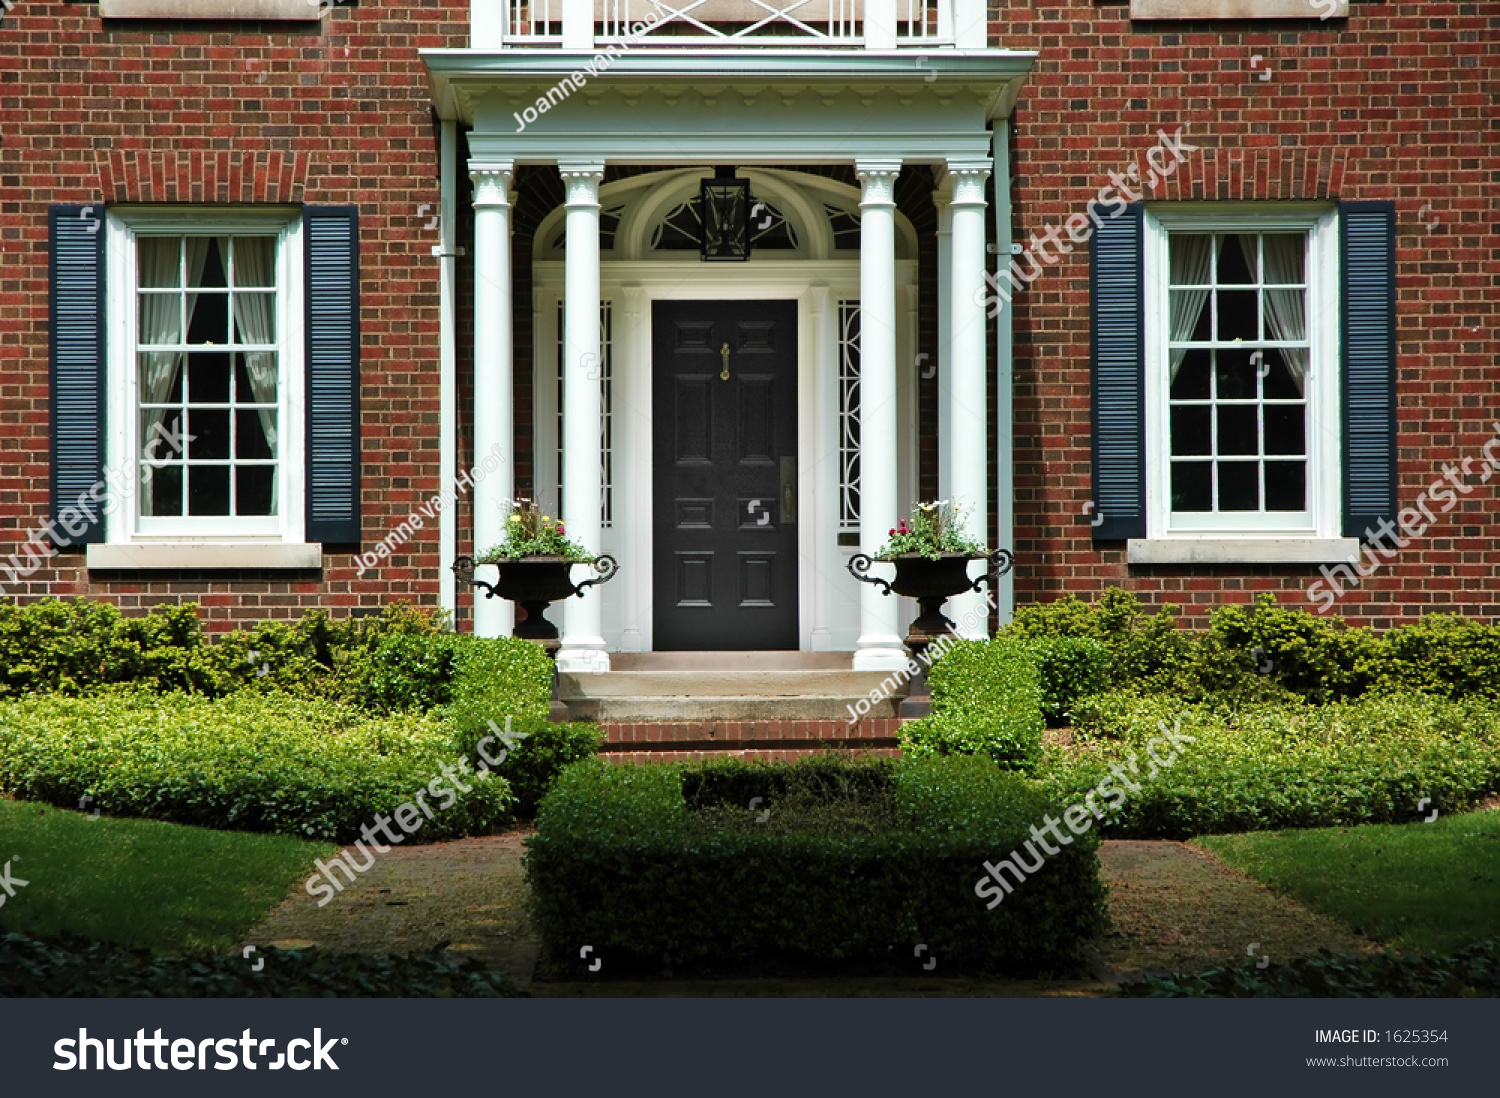 Red entrance door in front of residential house stock photo - Red Brick House Black Shutters Green Stock Photo 1625354